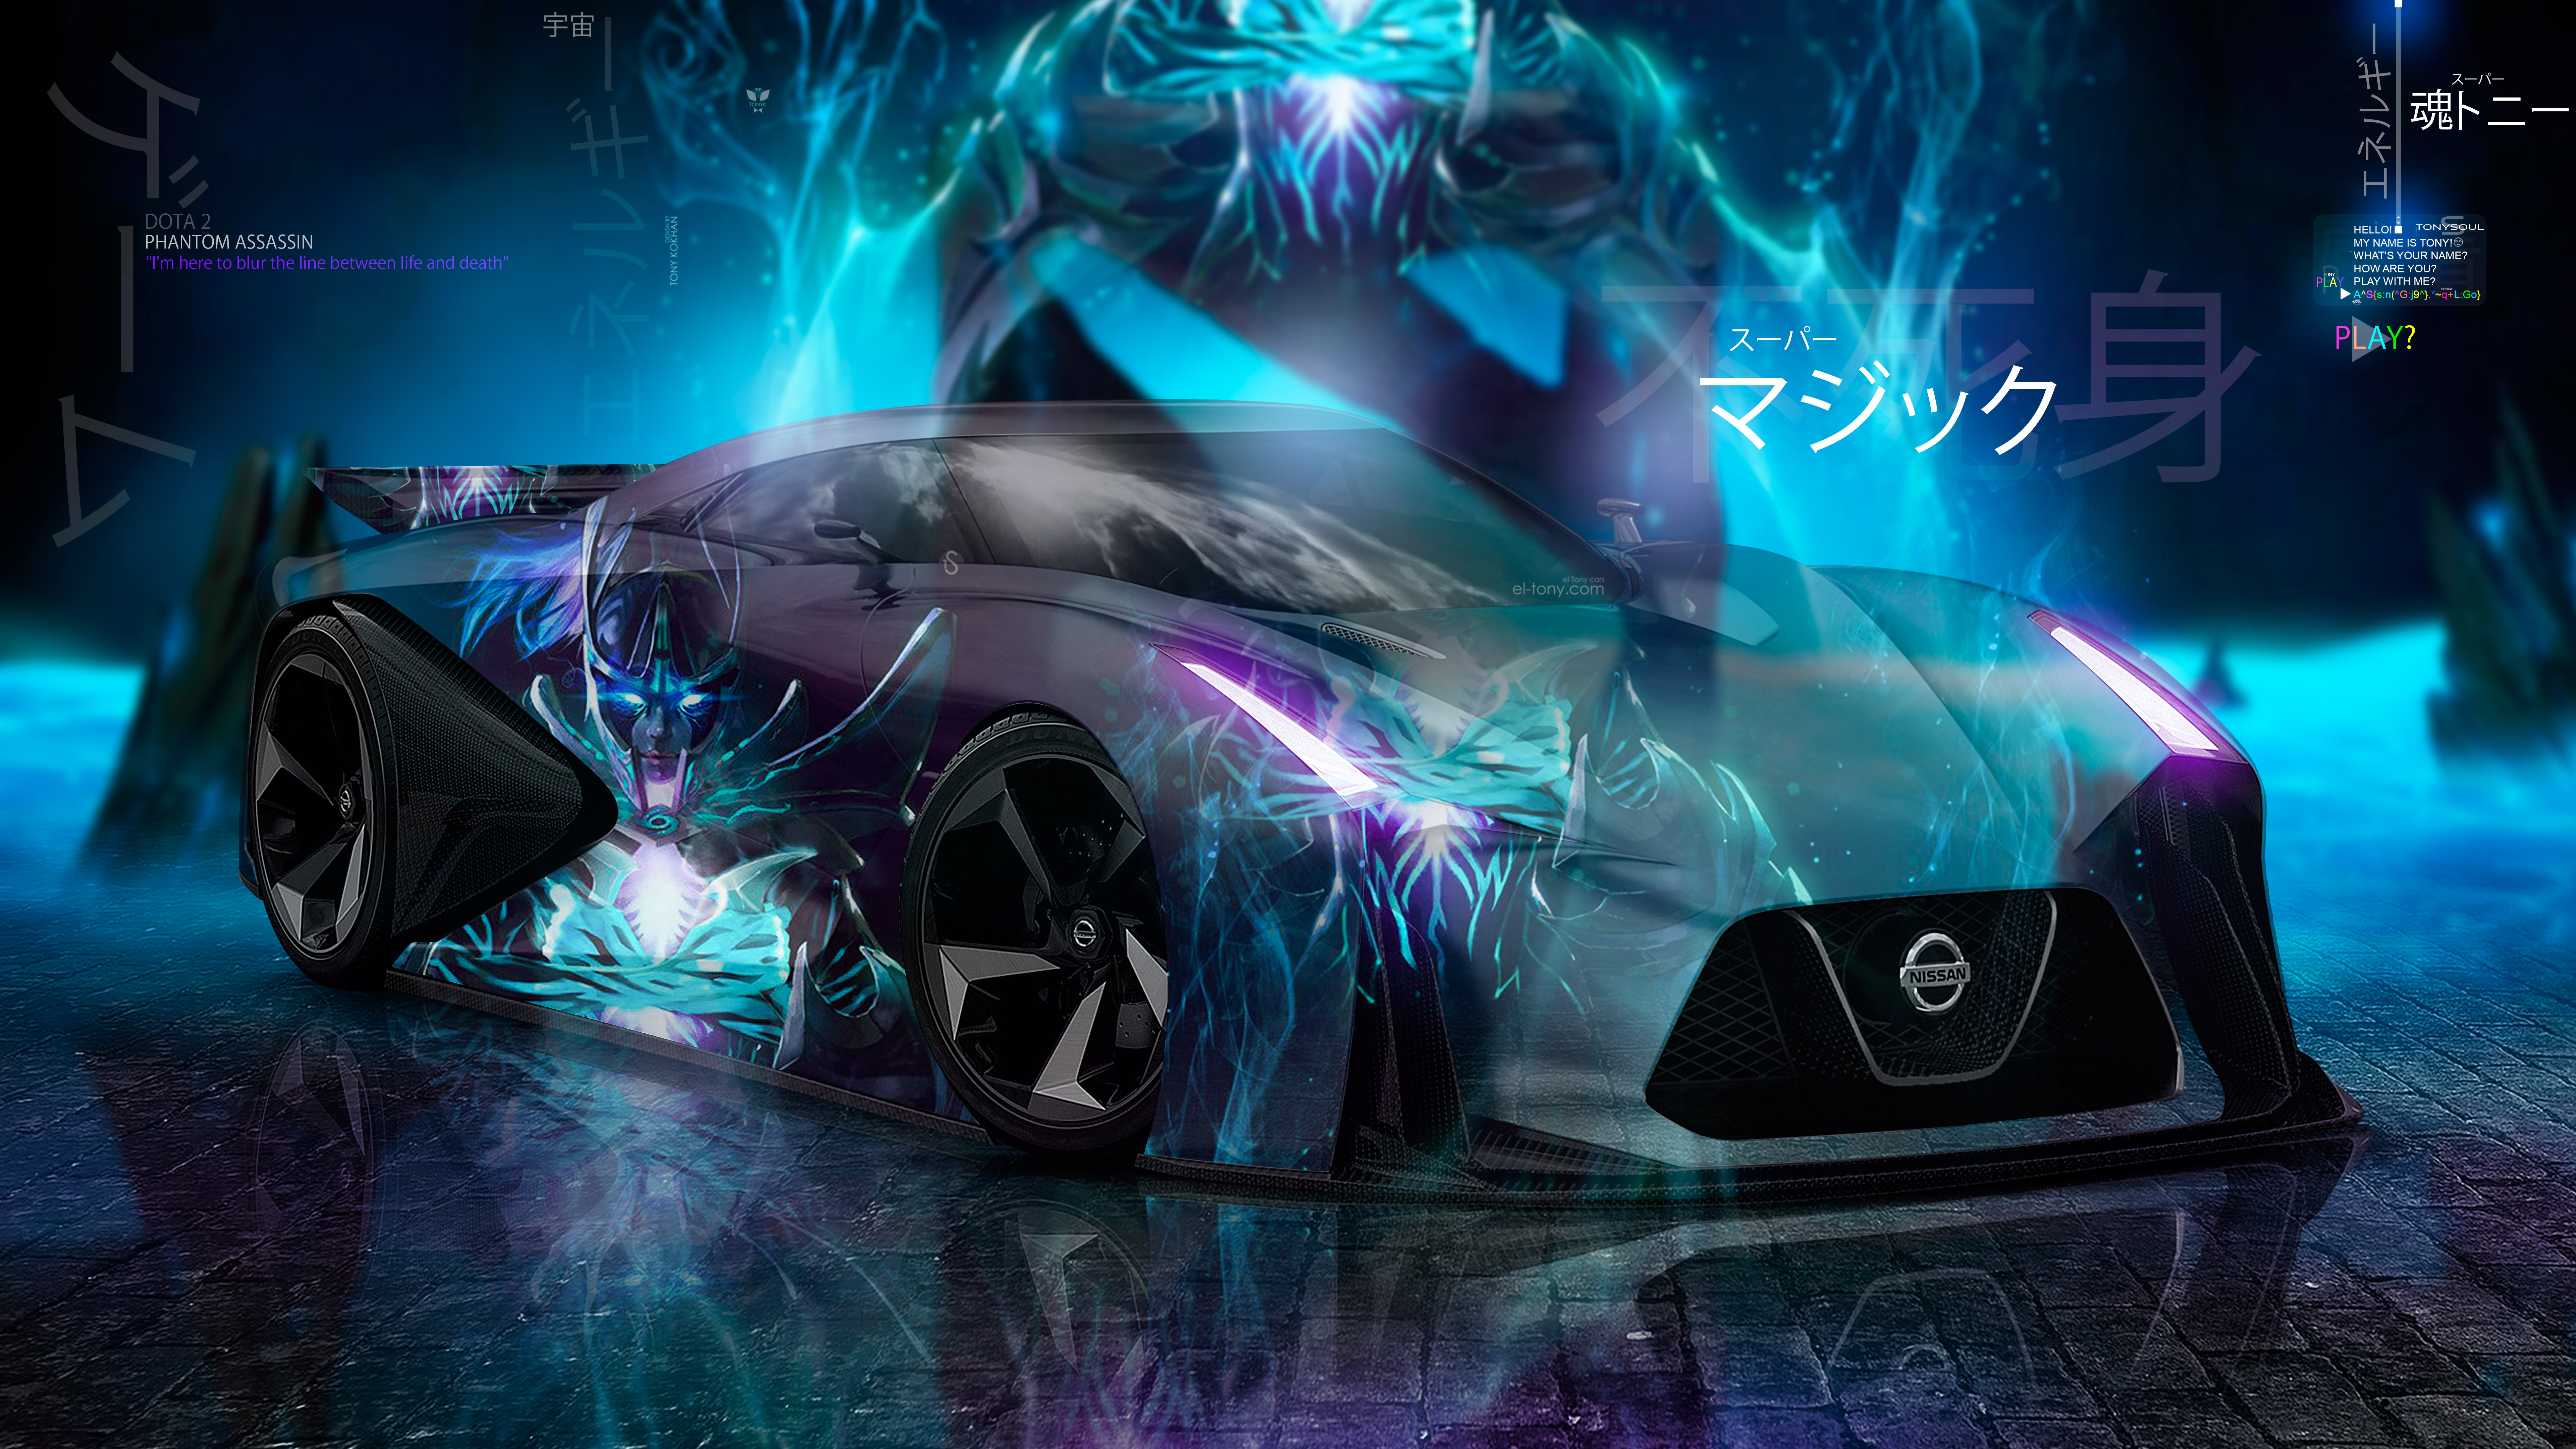 Nissan-GTR-2020-Super-Aerography-Phantom-Assassin-Dota-2-Game-Universe-Magic-Invulnerability-TonySoul-Art-Car-2020-Multicolors-8K-Wallpapers-design-by-Tony-Kokhan-www.el-tony.com-image